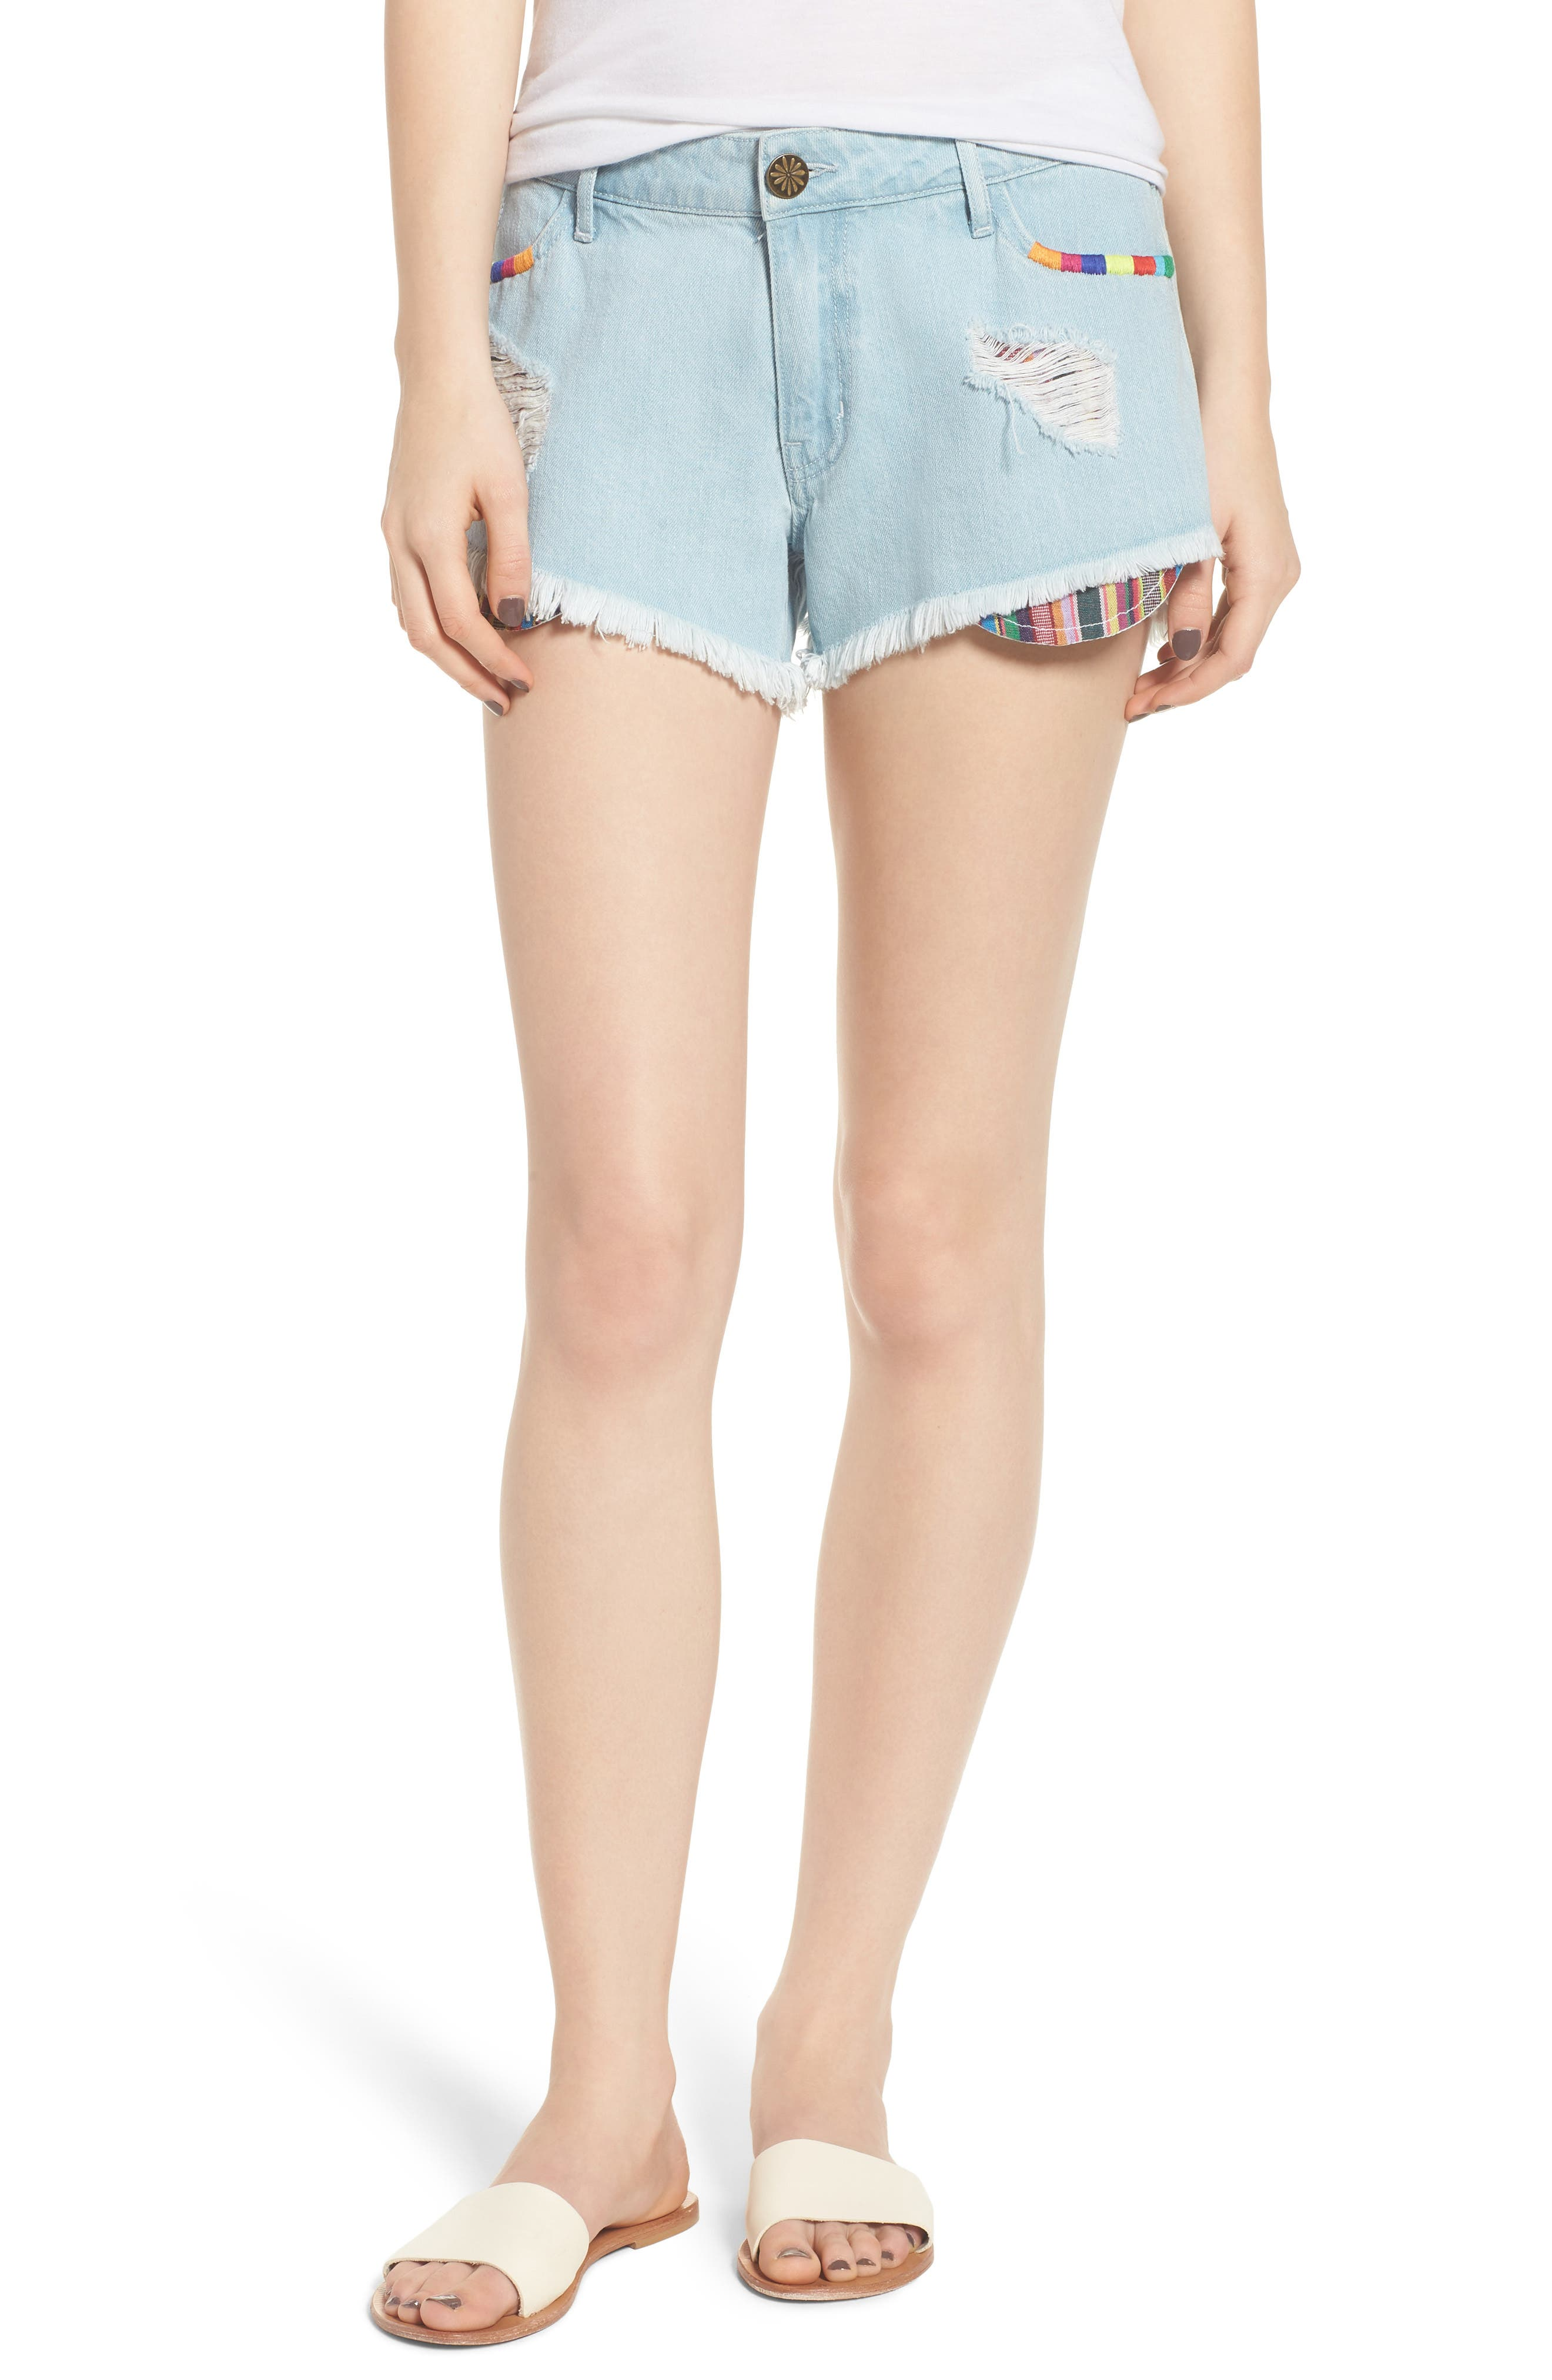 Cabo Cutoff Denim Shorts,                             Main thumbnail 1, color,                             400